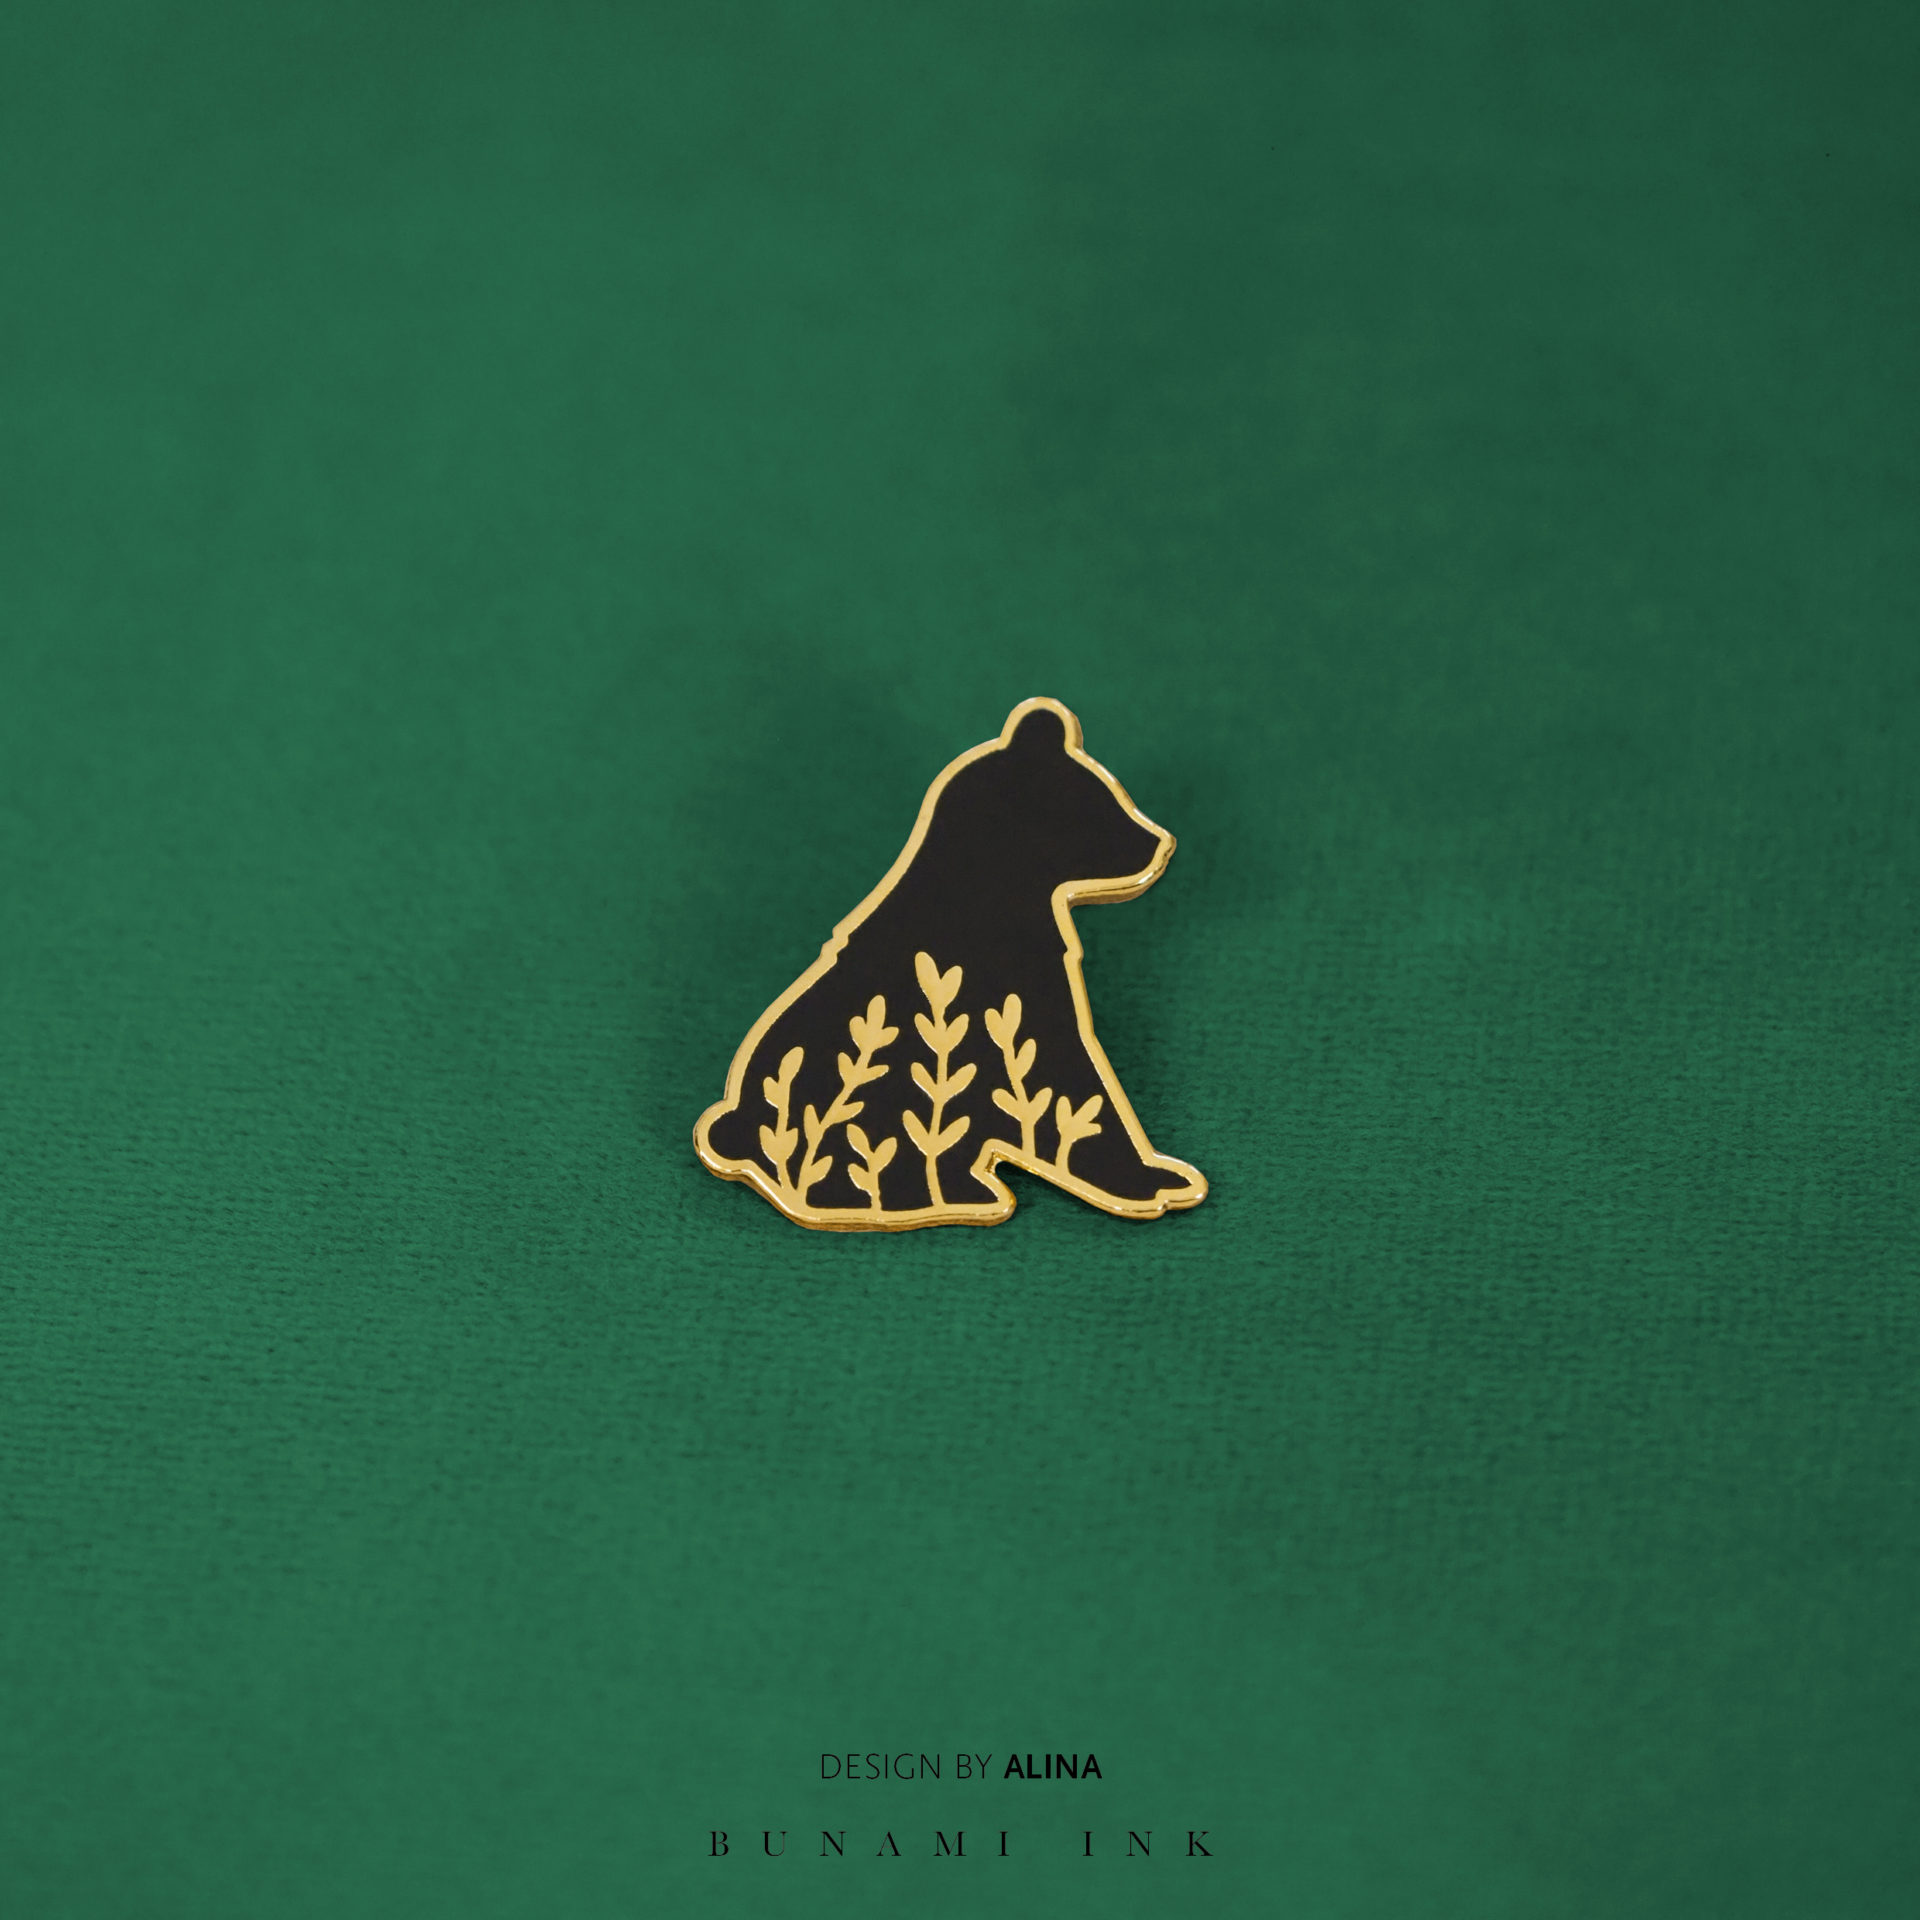 Little bear hard enamel tattoo design pin by Alina – details